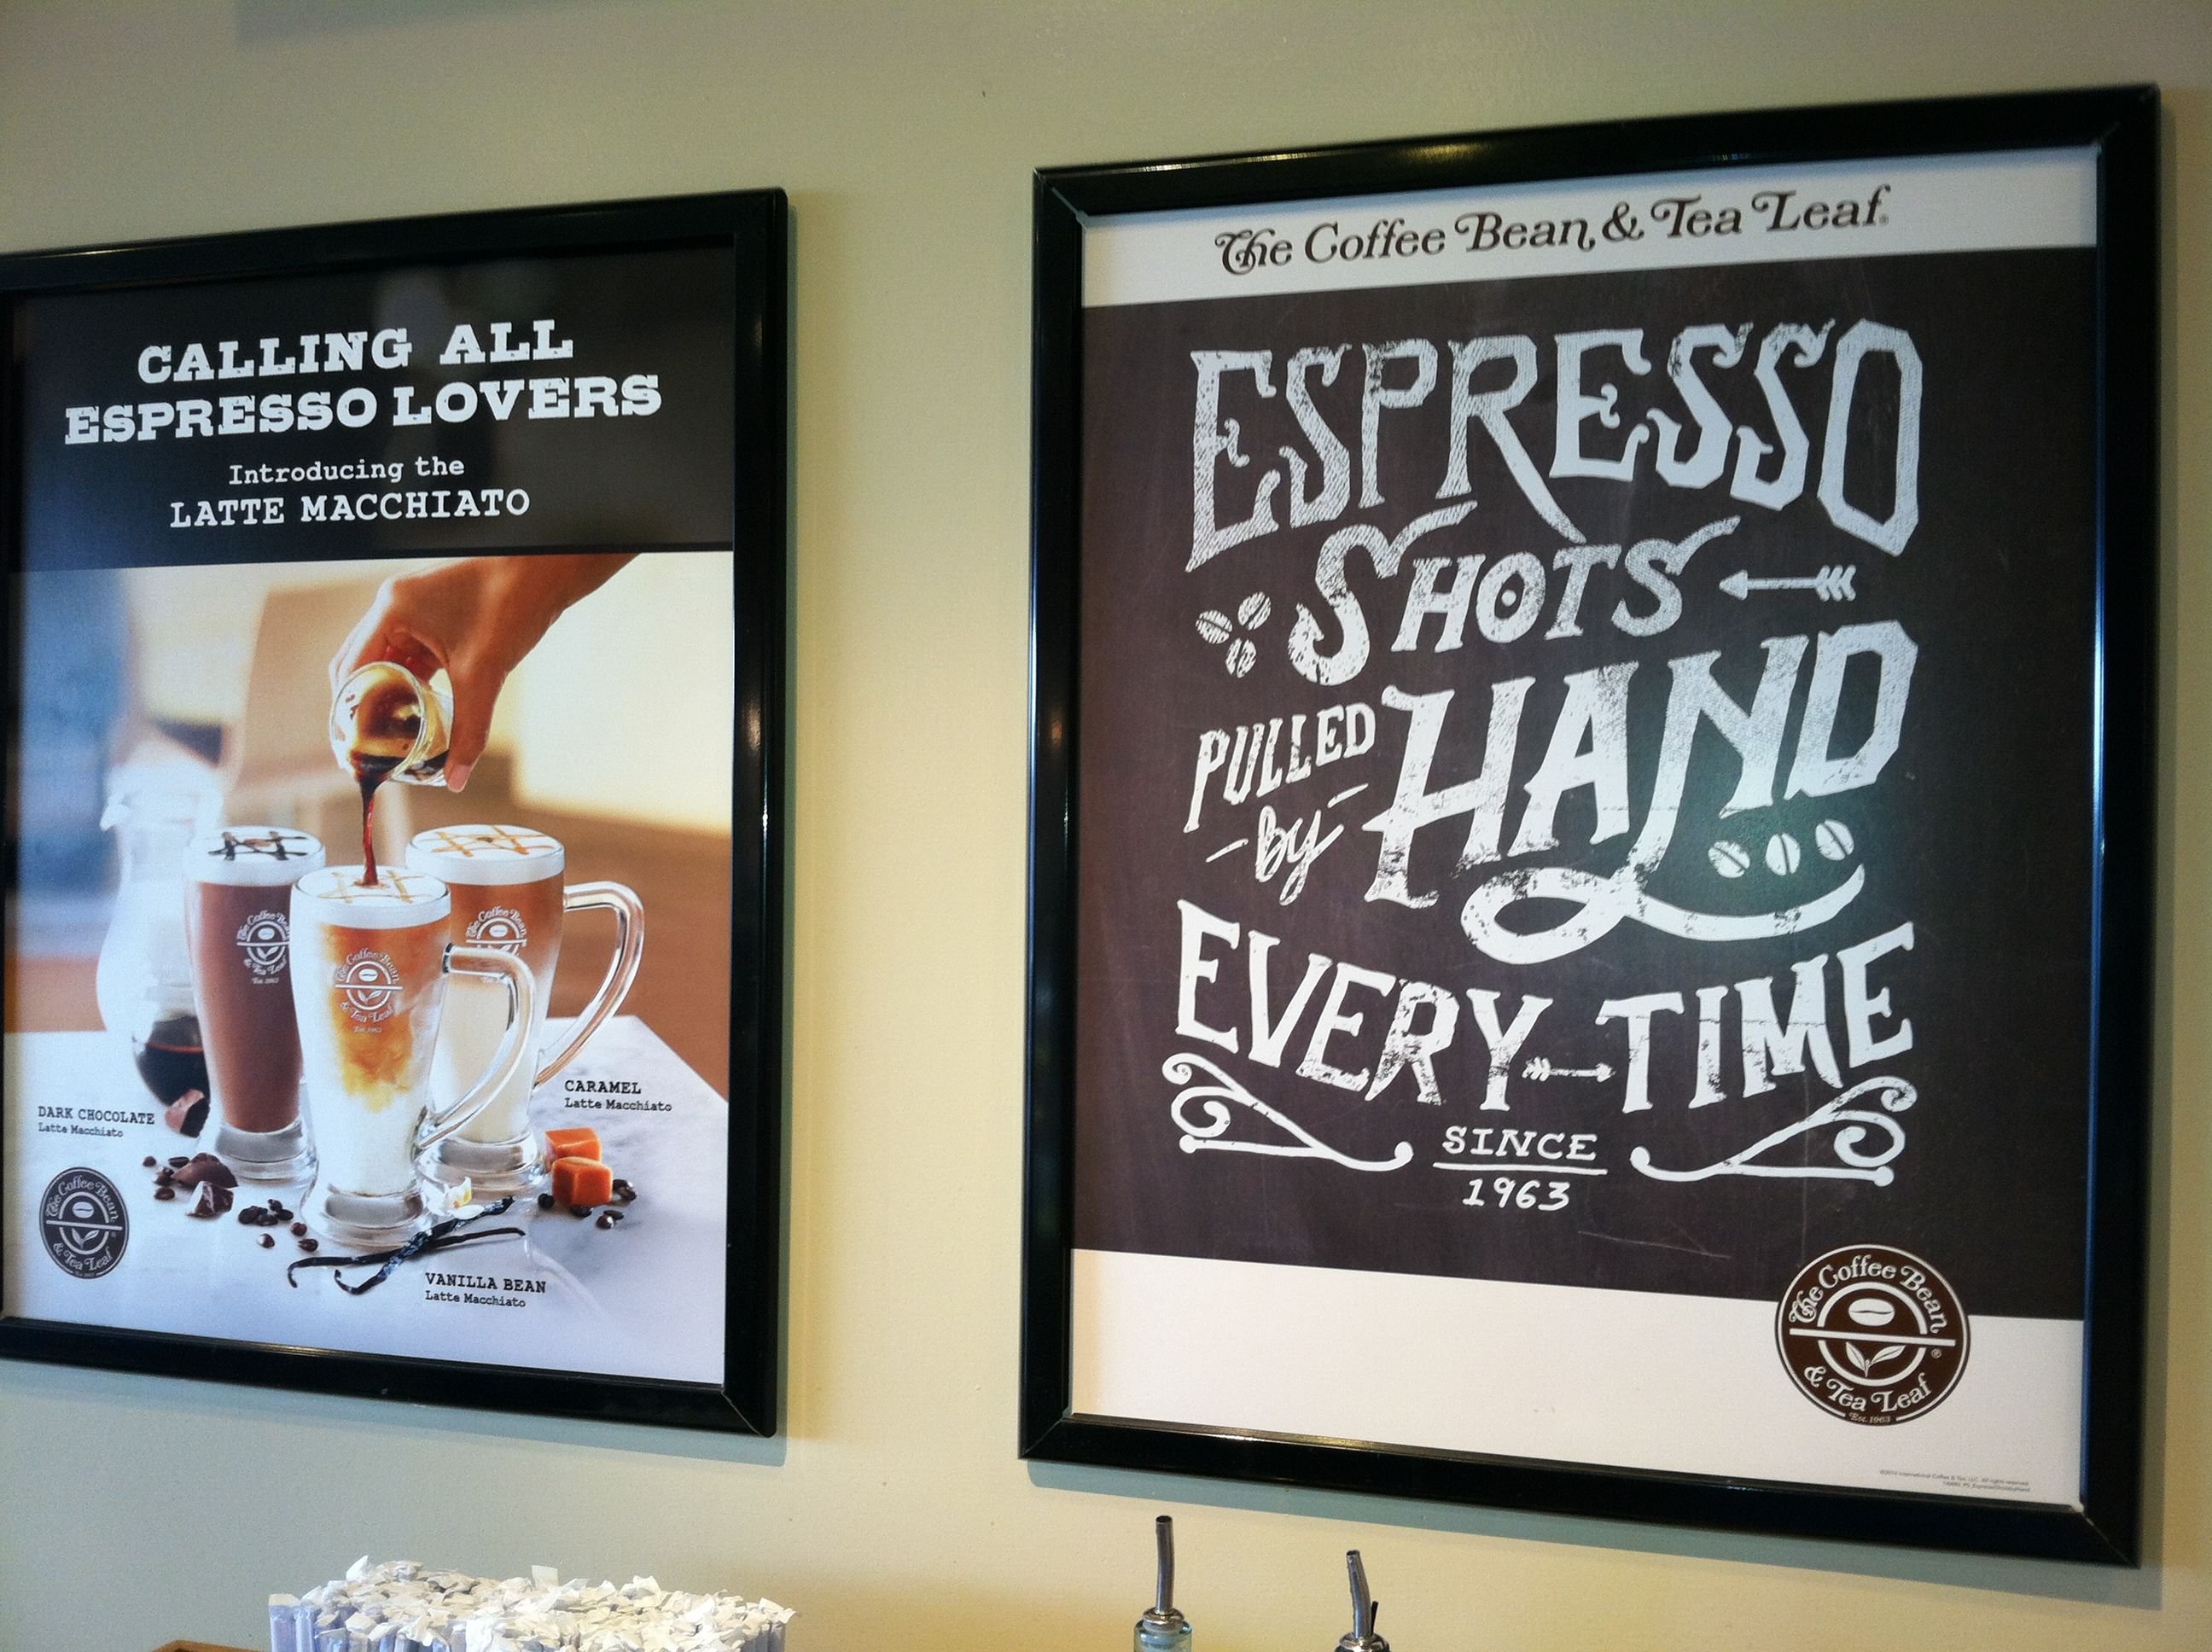 Coffee Bean & Tea Leaf wall signs Tea leaves, Espresso